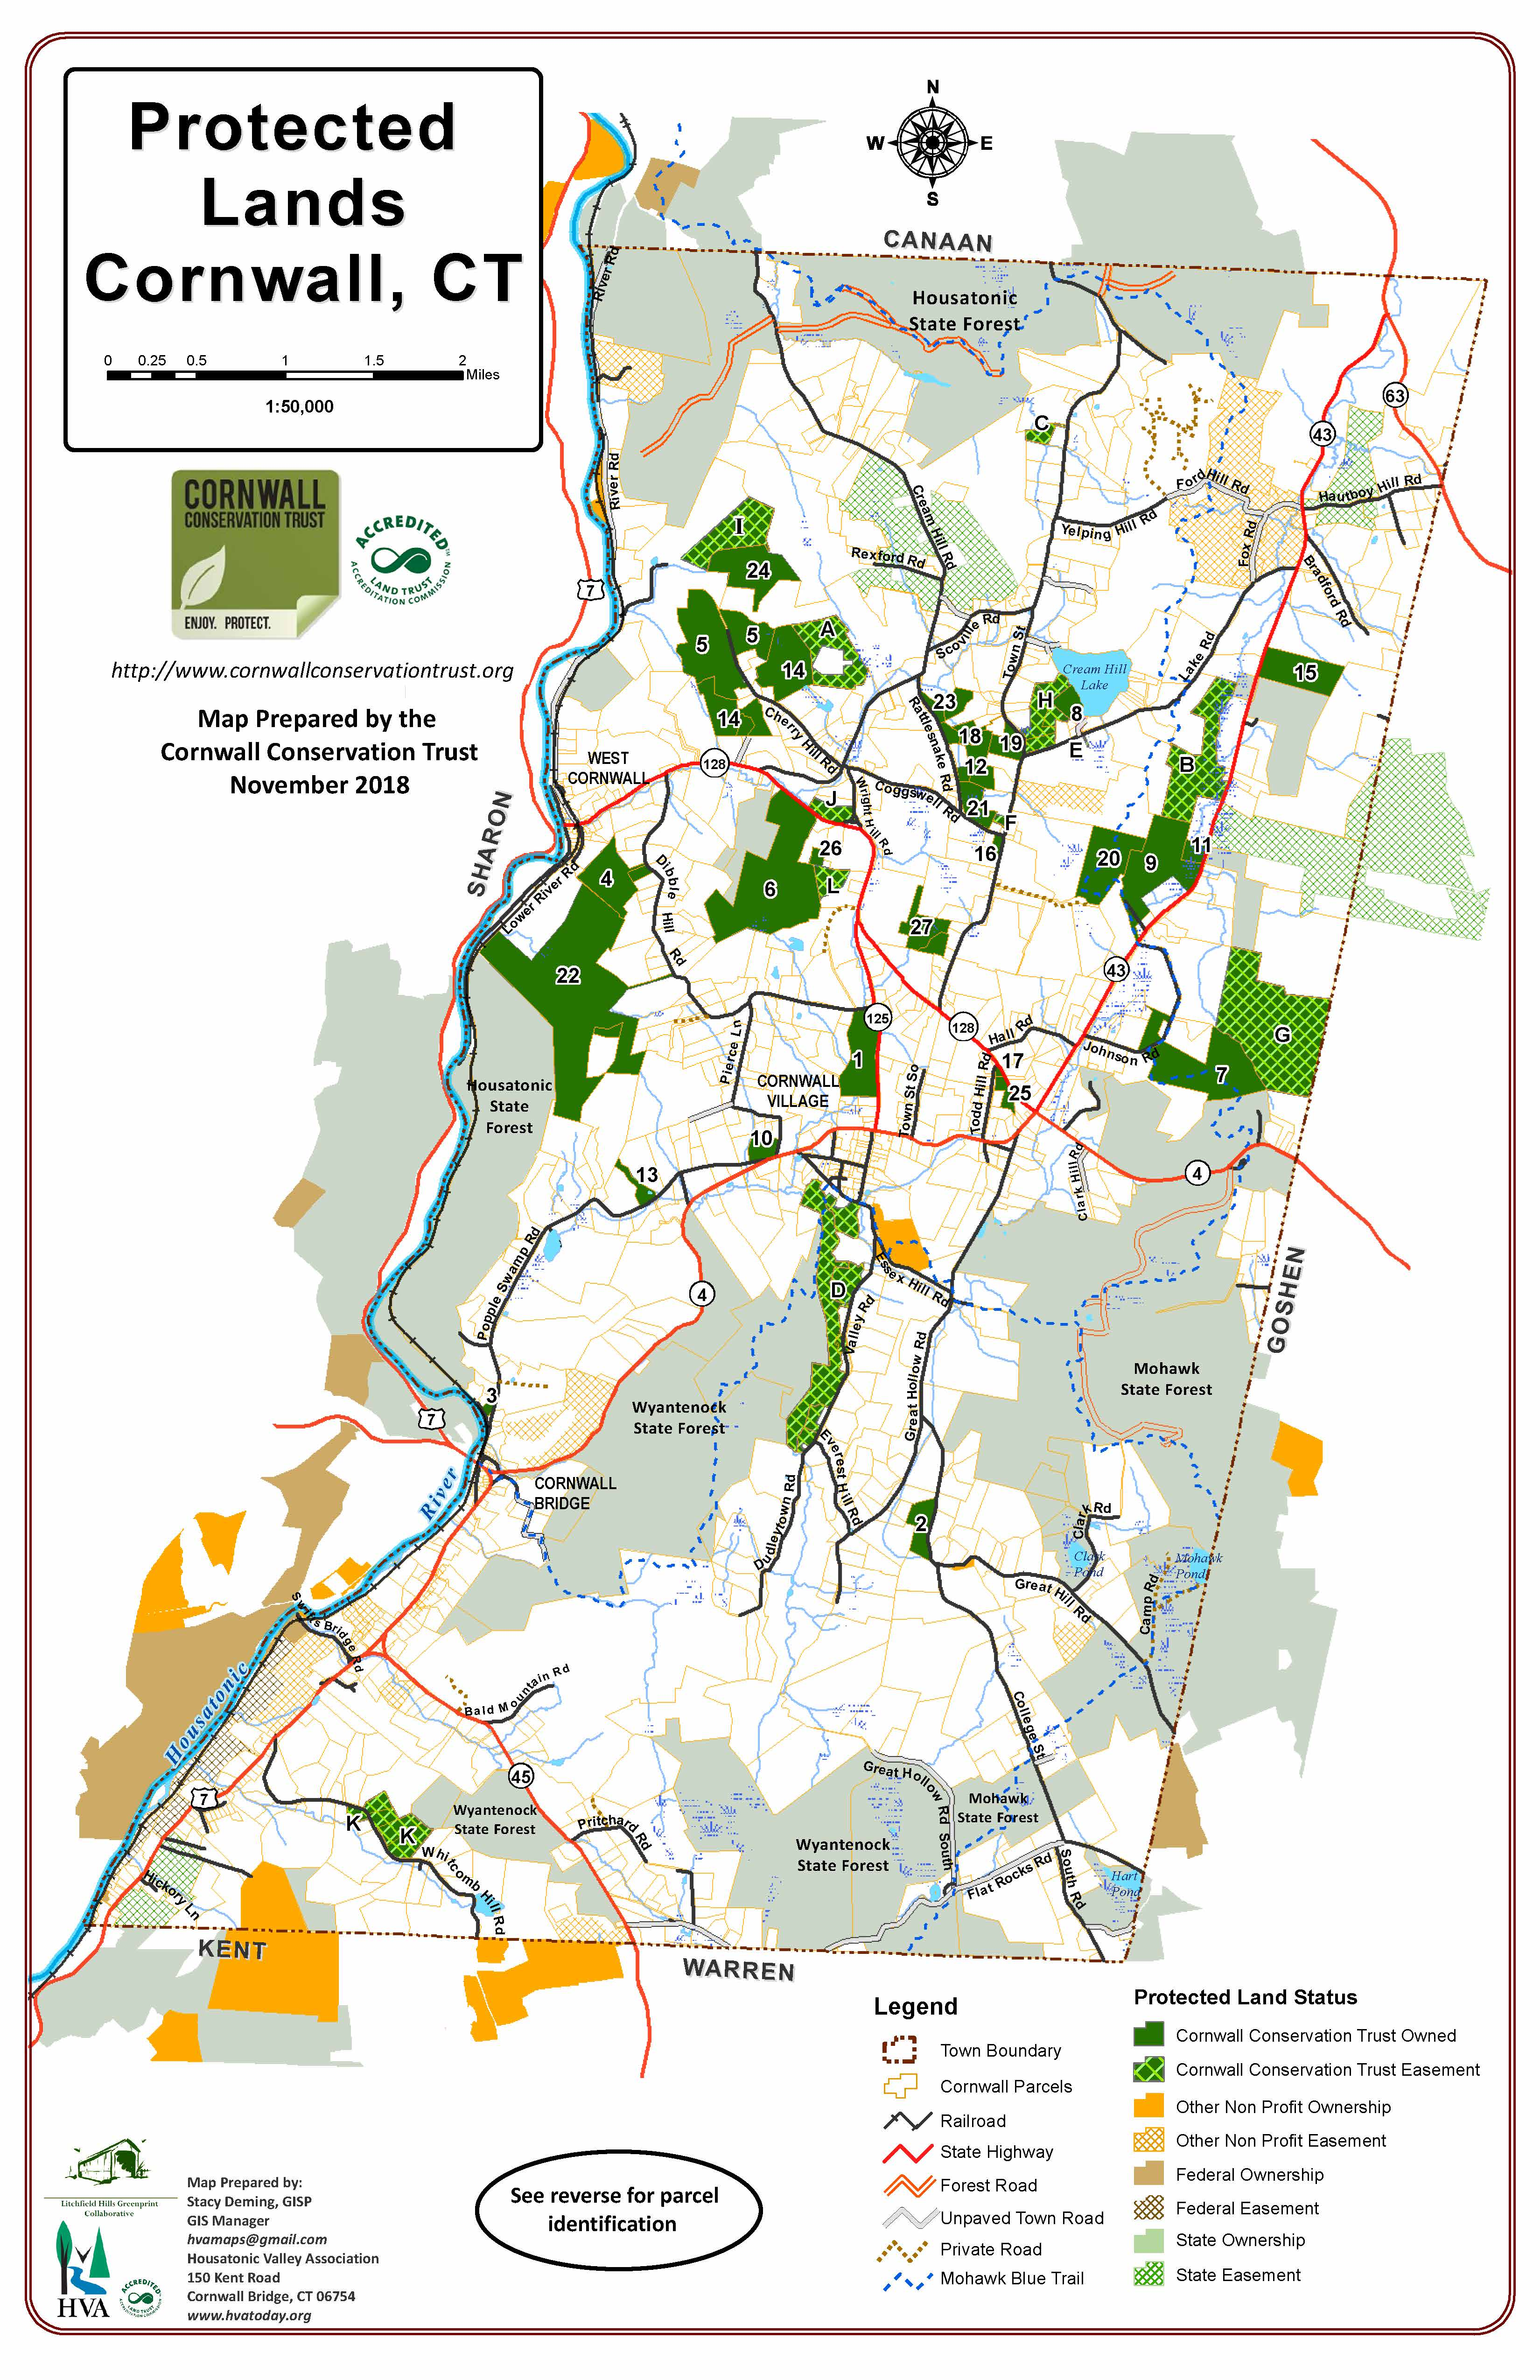 Cornwall Conservation Trust Protected Parcels Map on